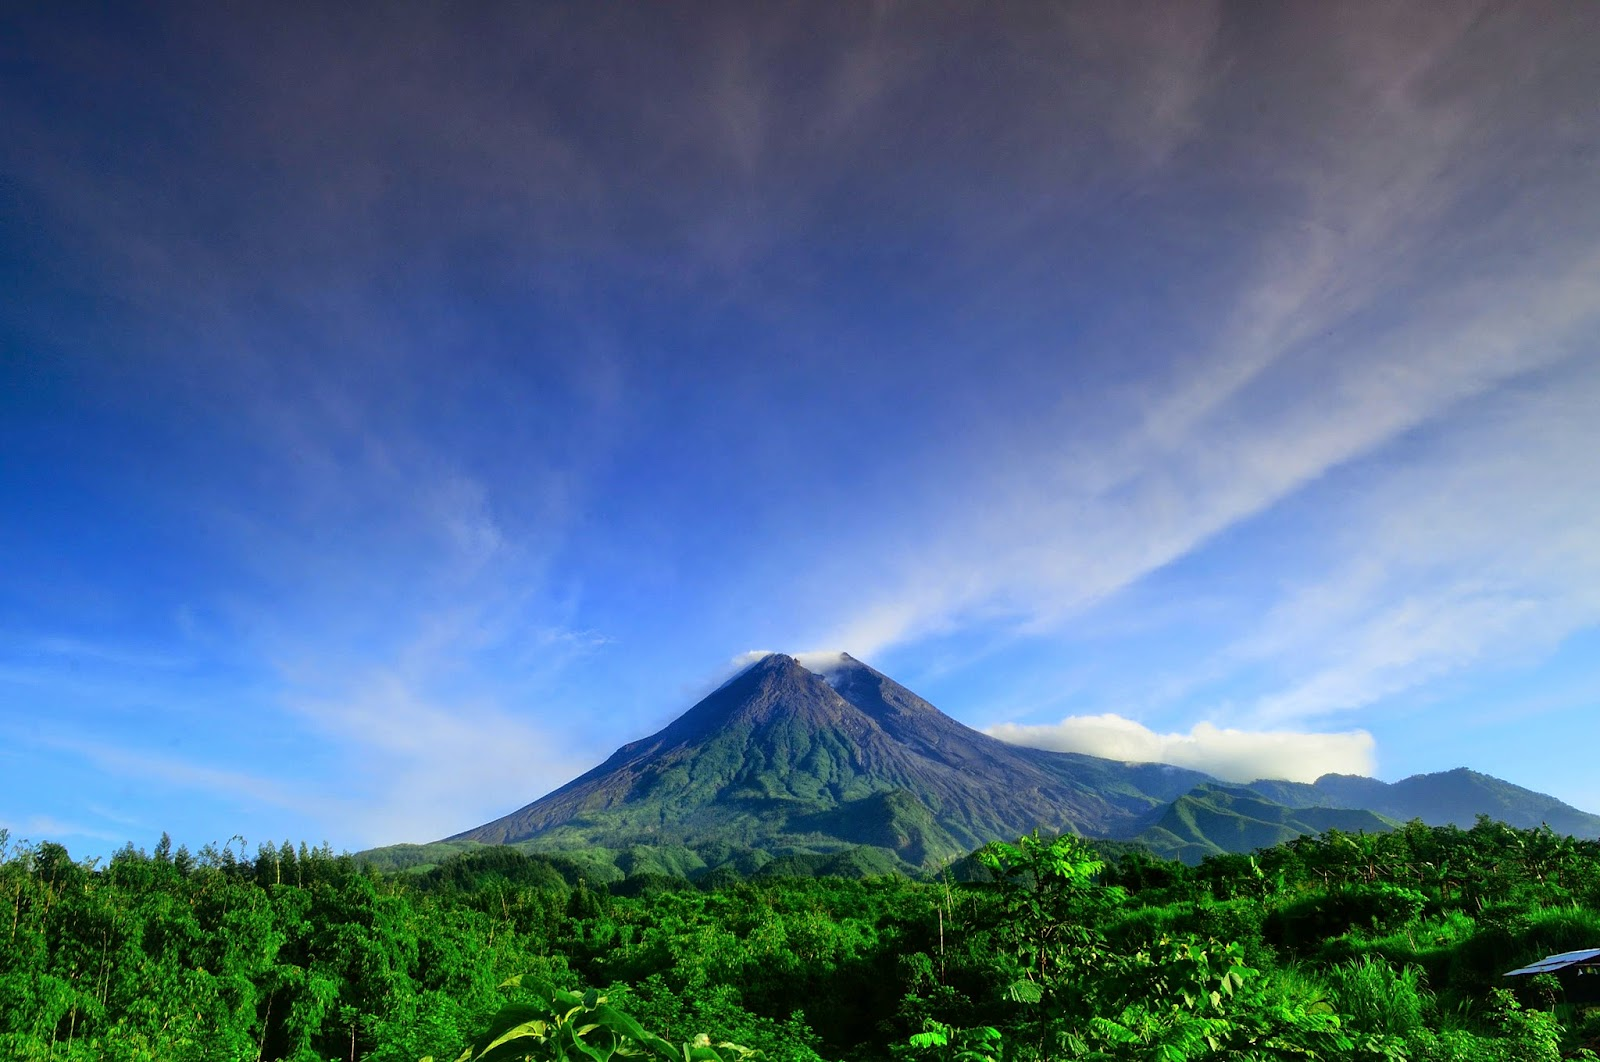 Where to go see a Volcano